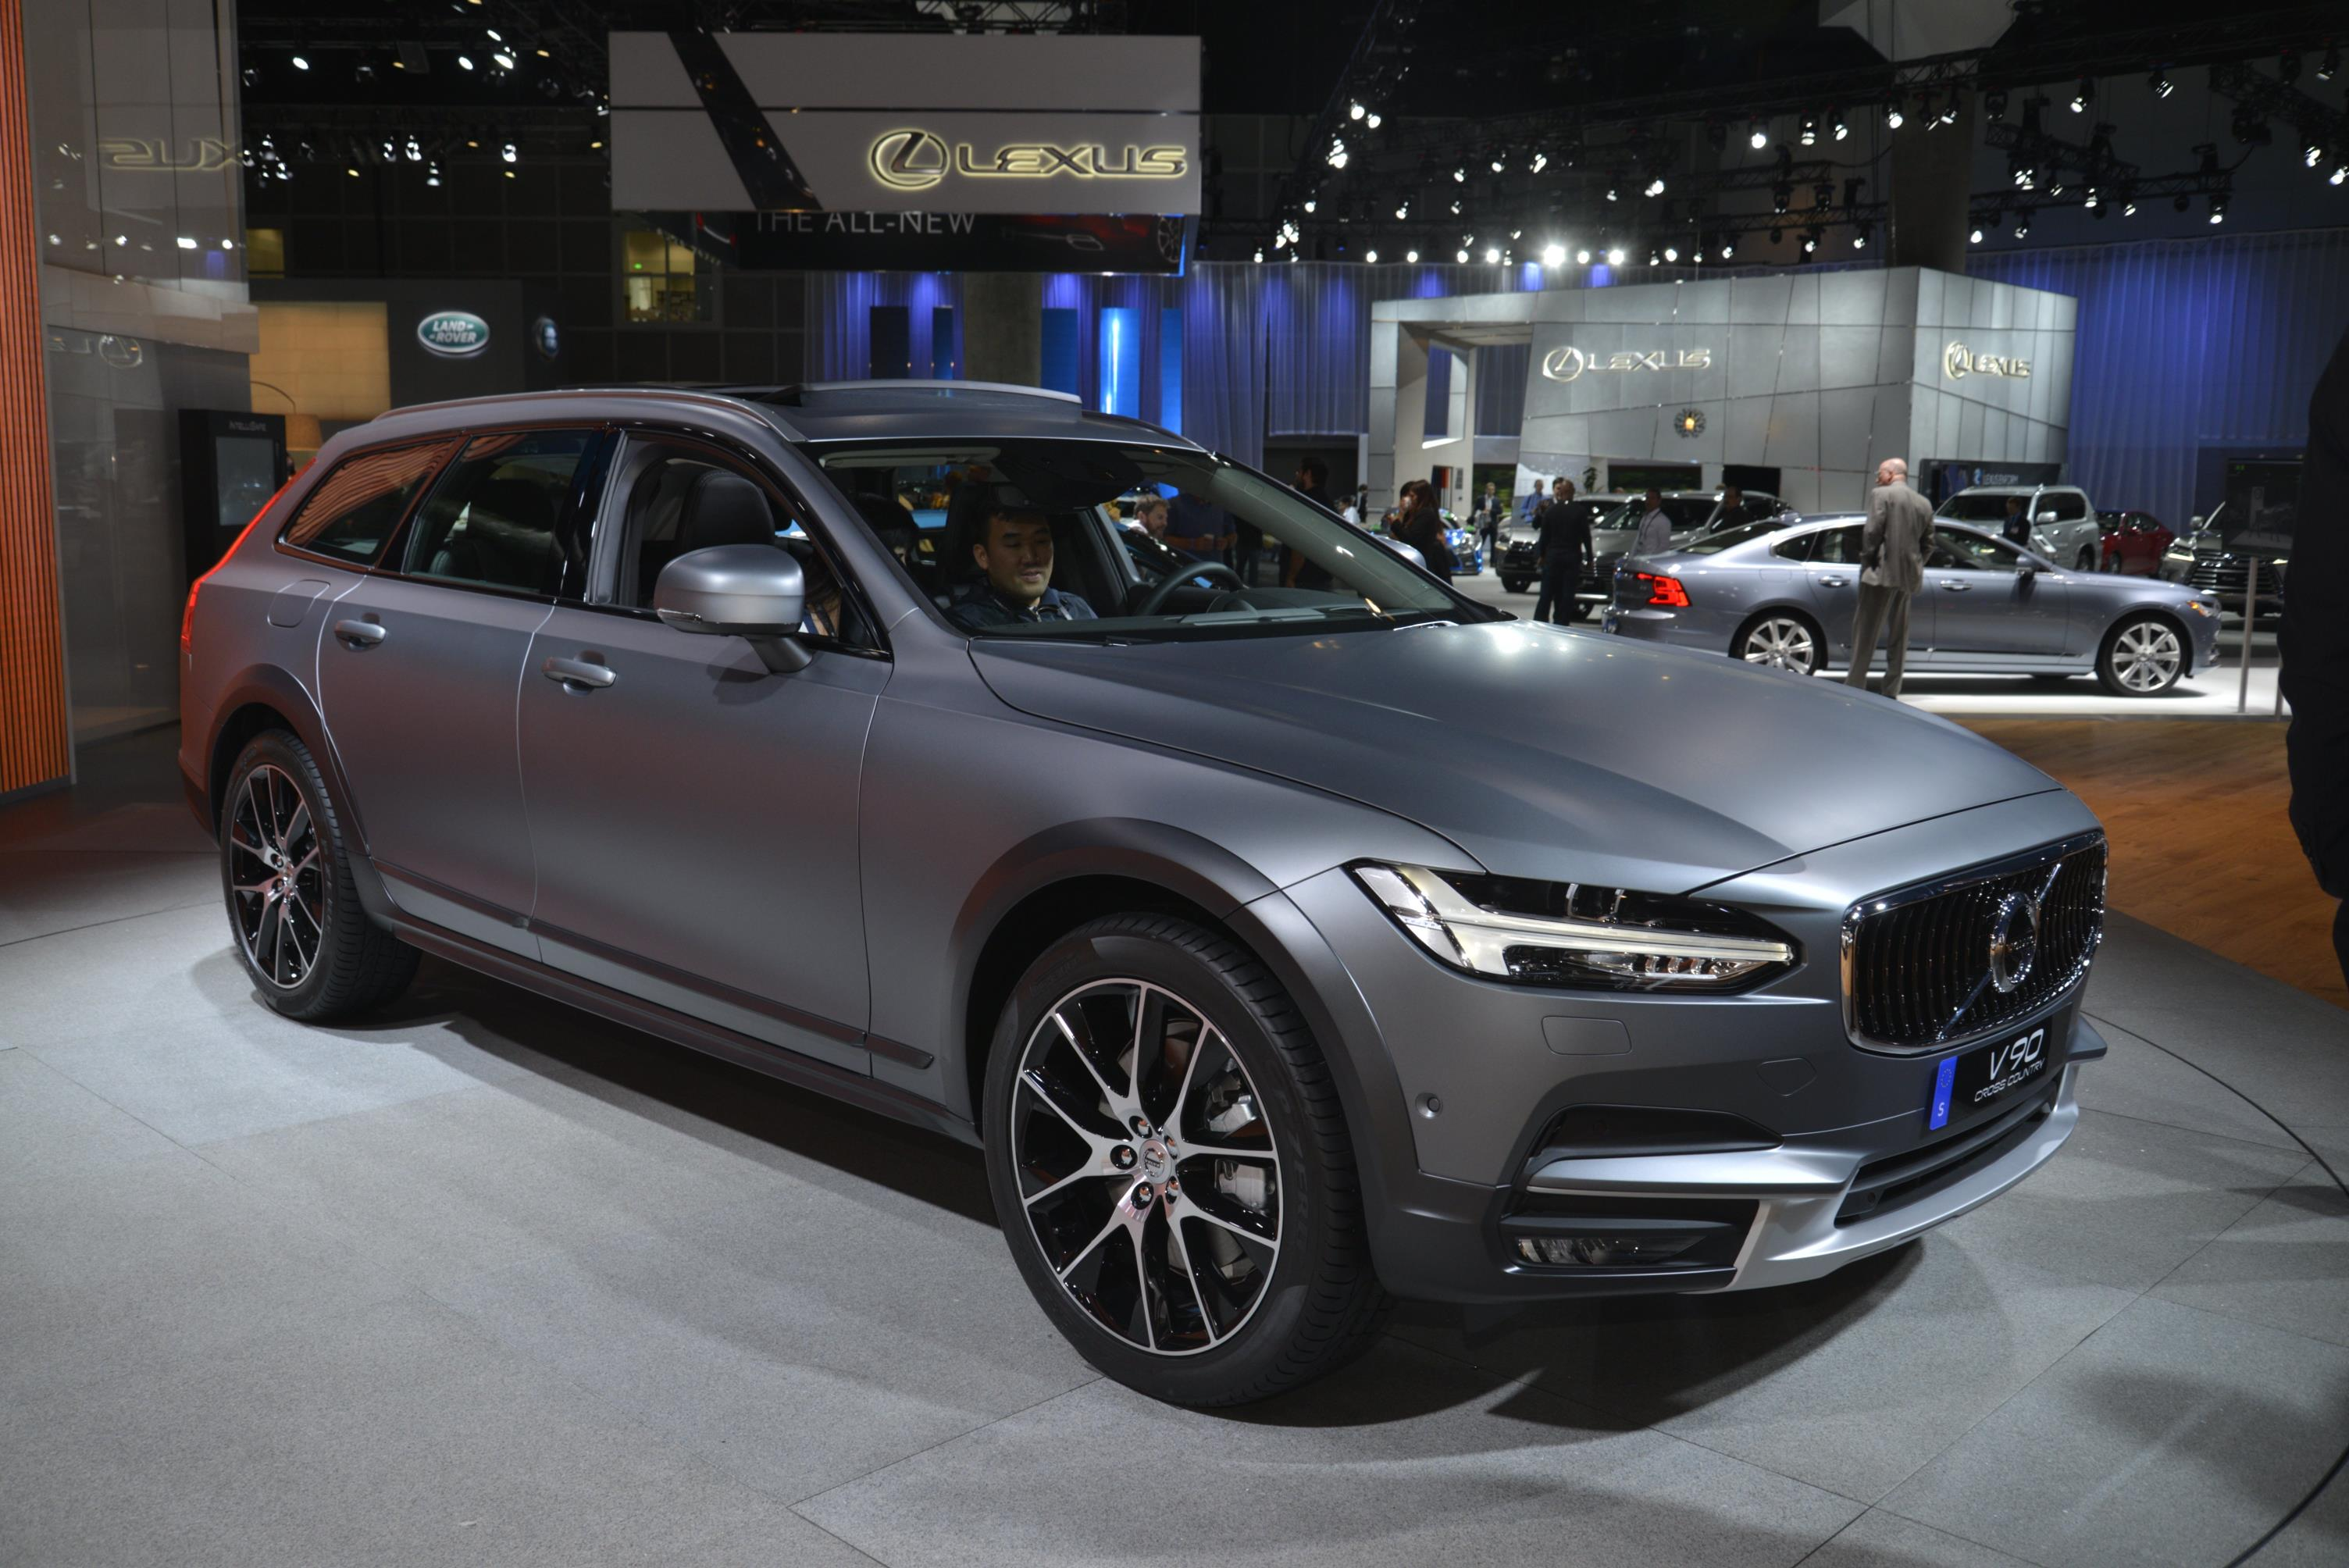 Volvo S60 Next Generation >> Volvo V90 Cross Country and V60 Polestar: Two Sides of the Swedish Wagon - autoevolution